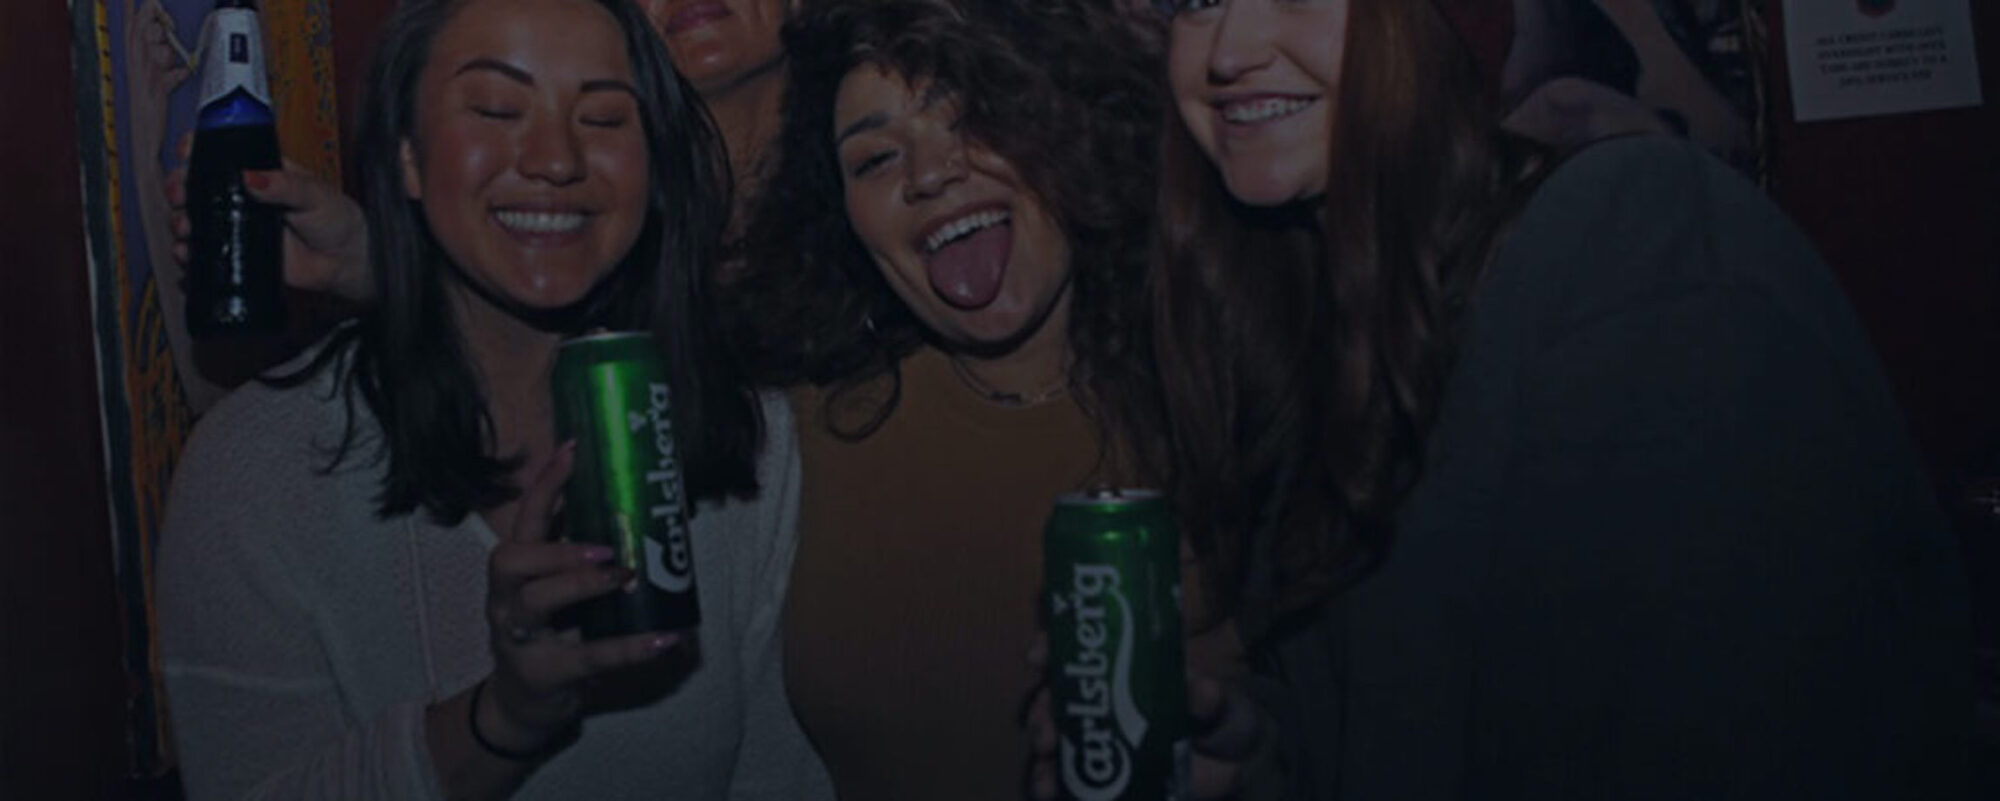 Indie Life Events Carlsberg Beer Event